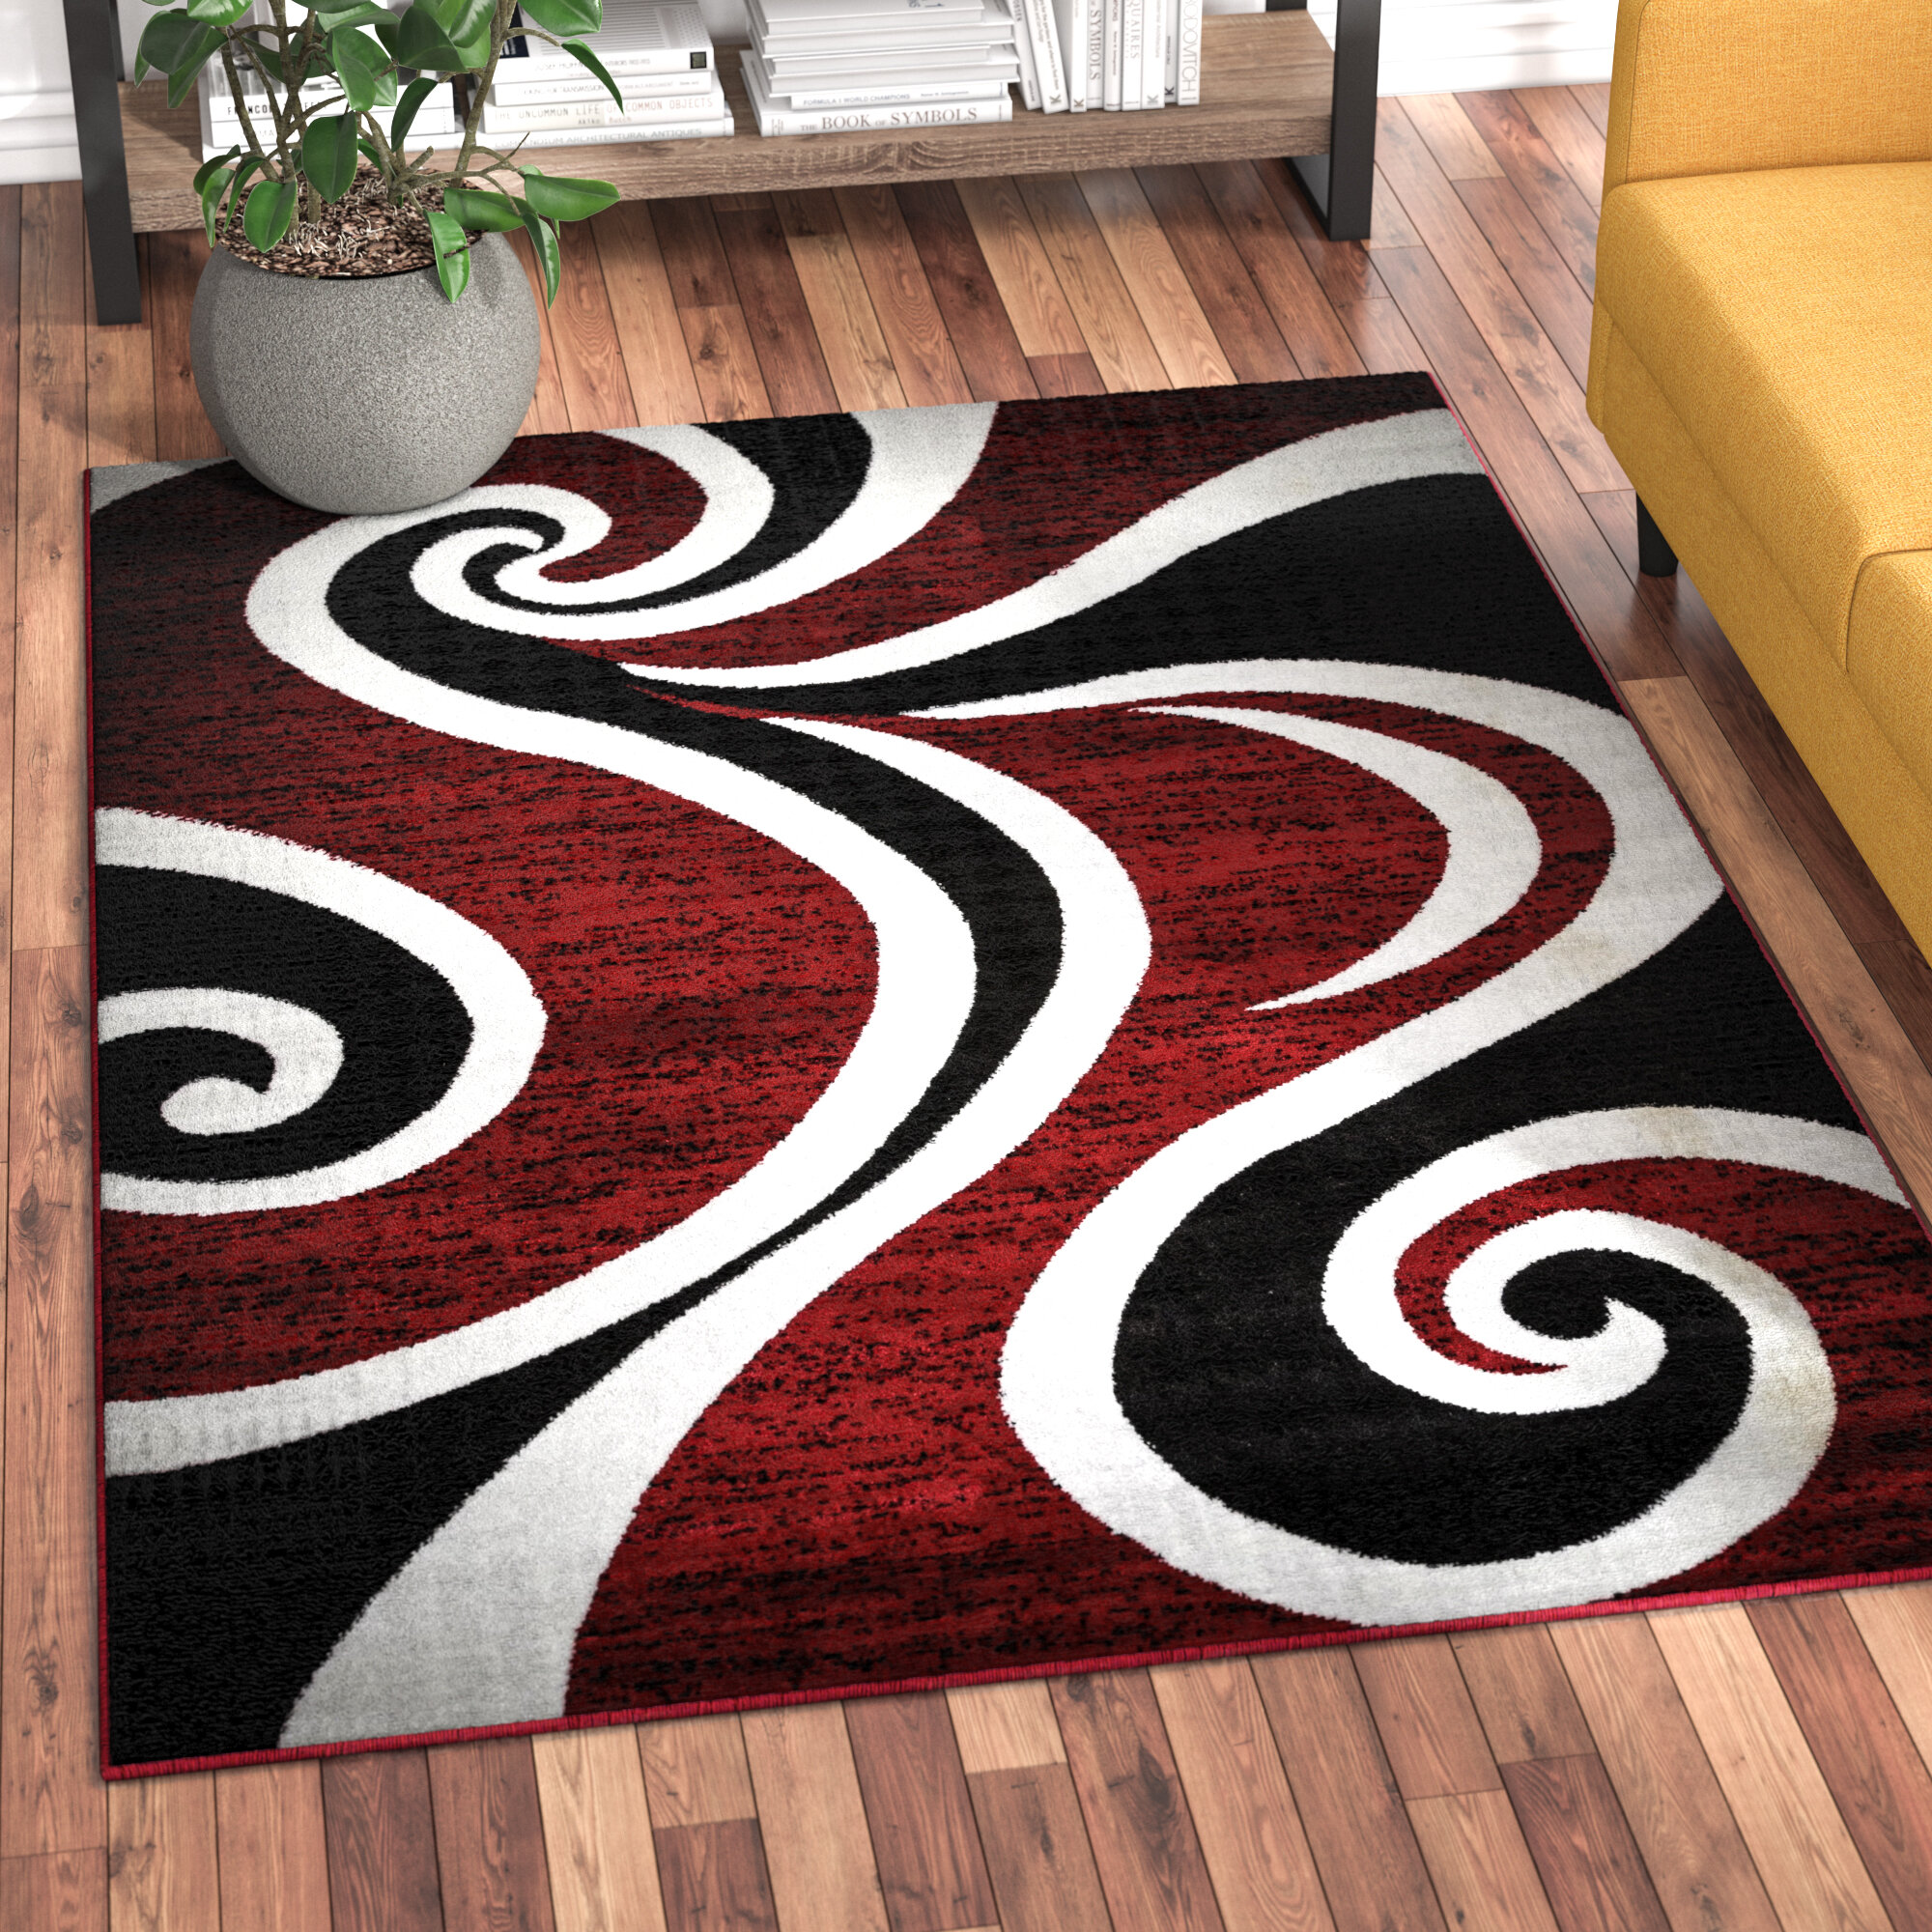 Collingwood Red Black White Area Rug